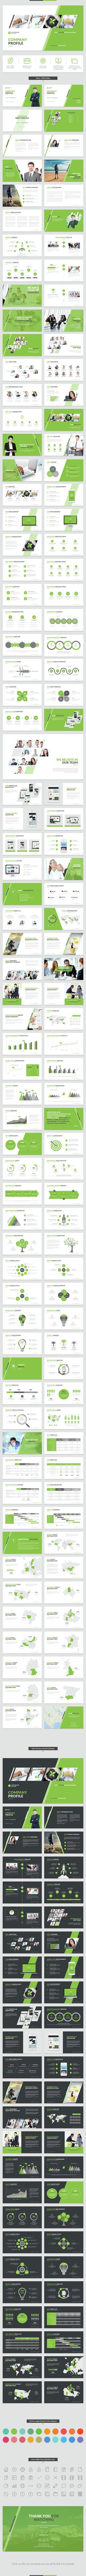 Company Profile PowerPoint Template - Business PowerPoint Templates Download here: https://graphicriver.net/item/company-profile-powerpoint-template/15182669?https://graphicriver.net/item/happybiz-multipurpose-business-template/6712887?ref=classicdesignp